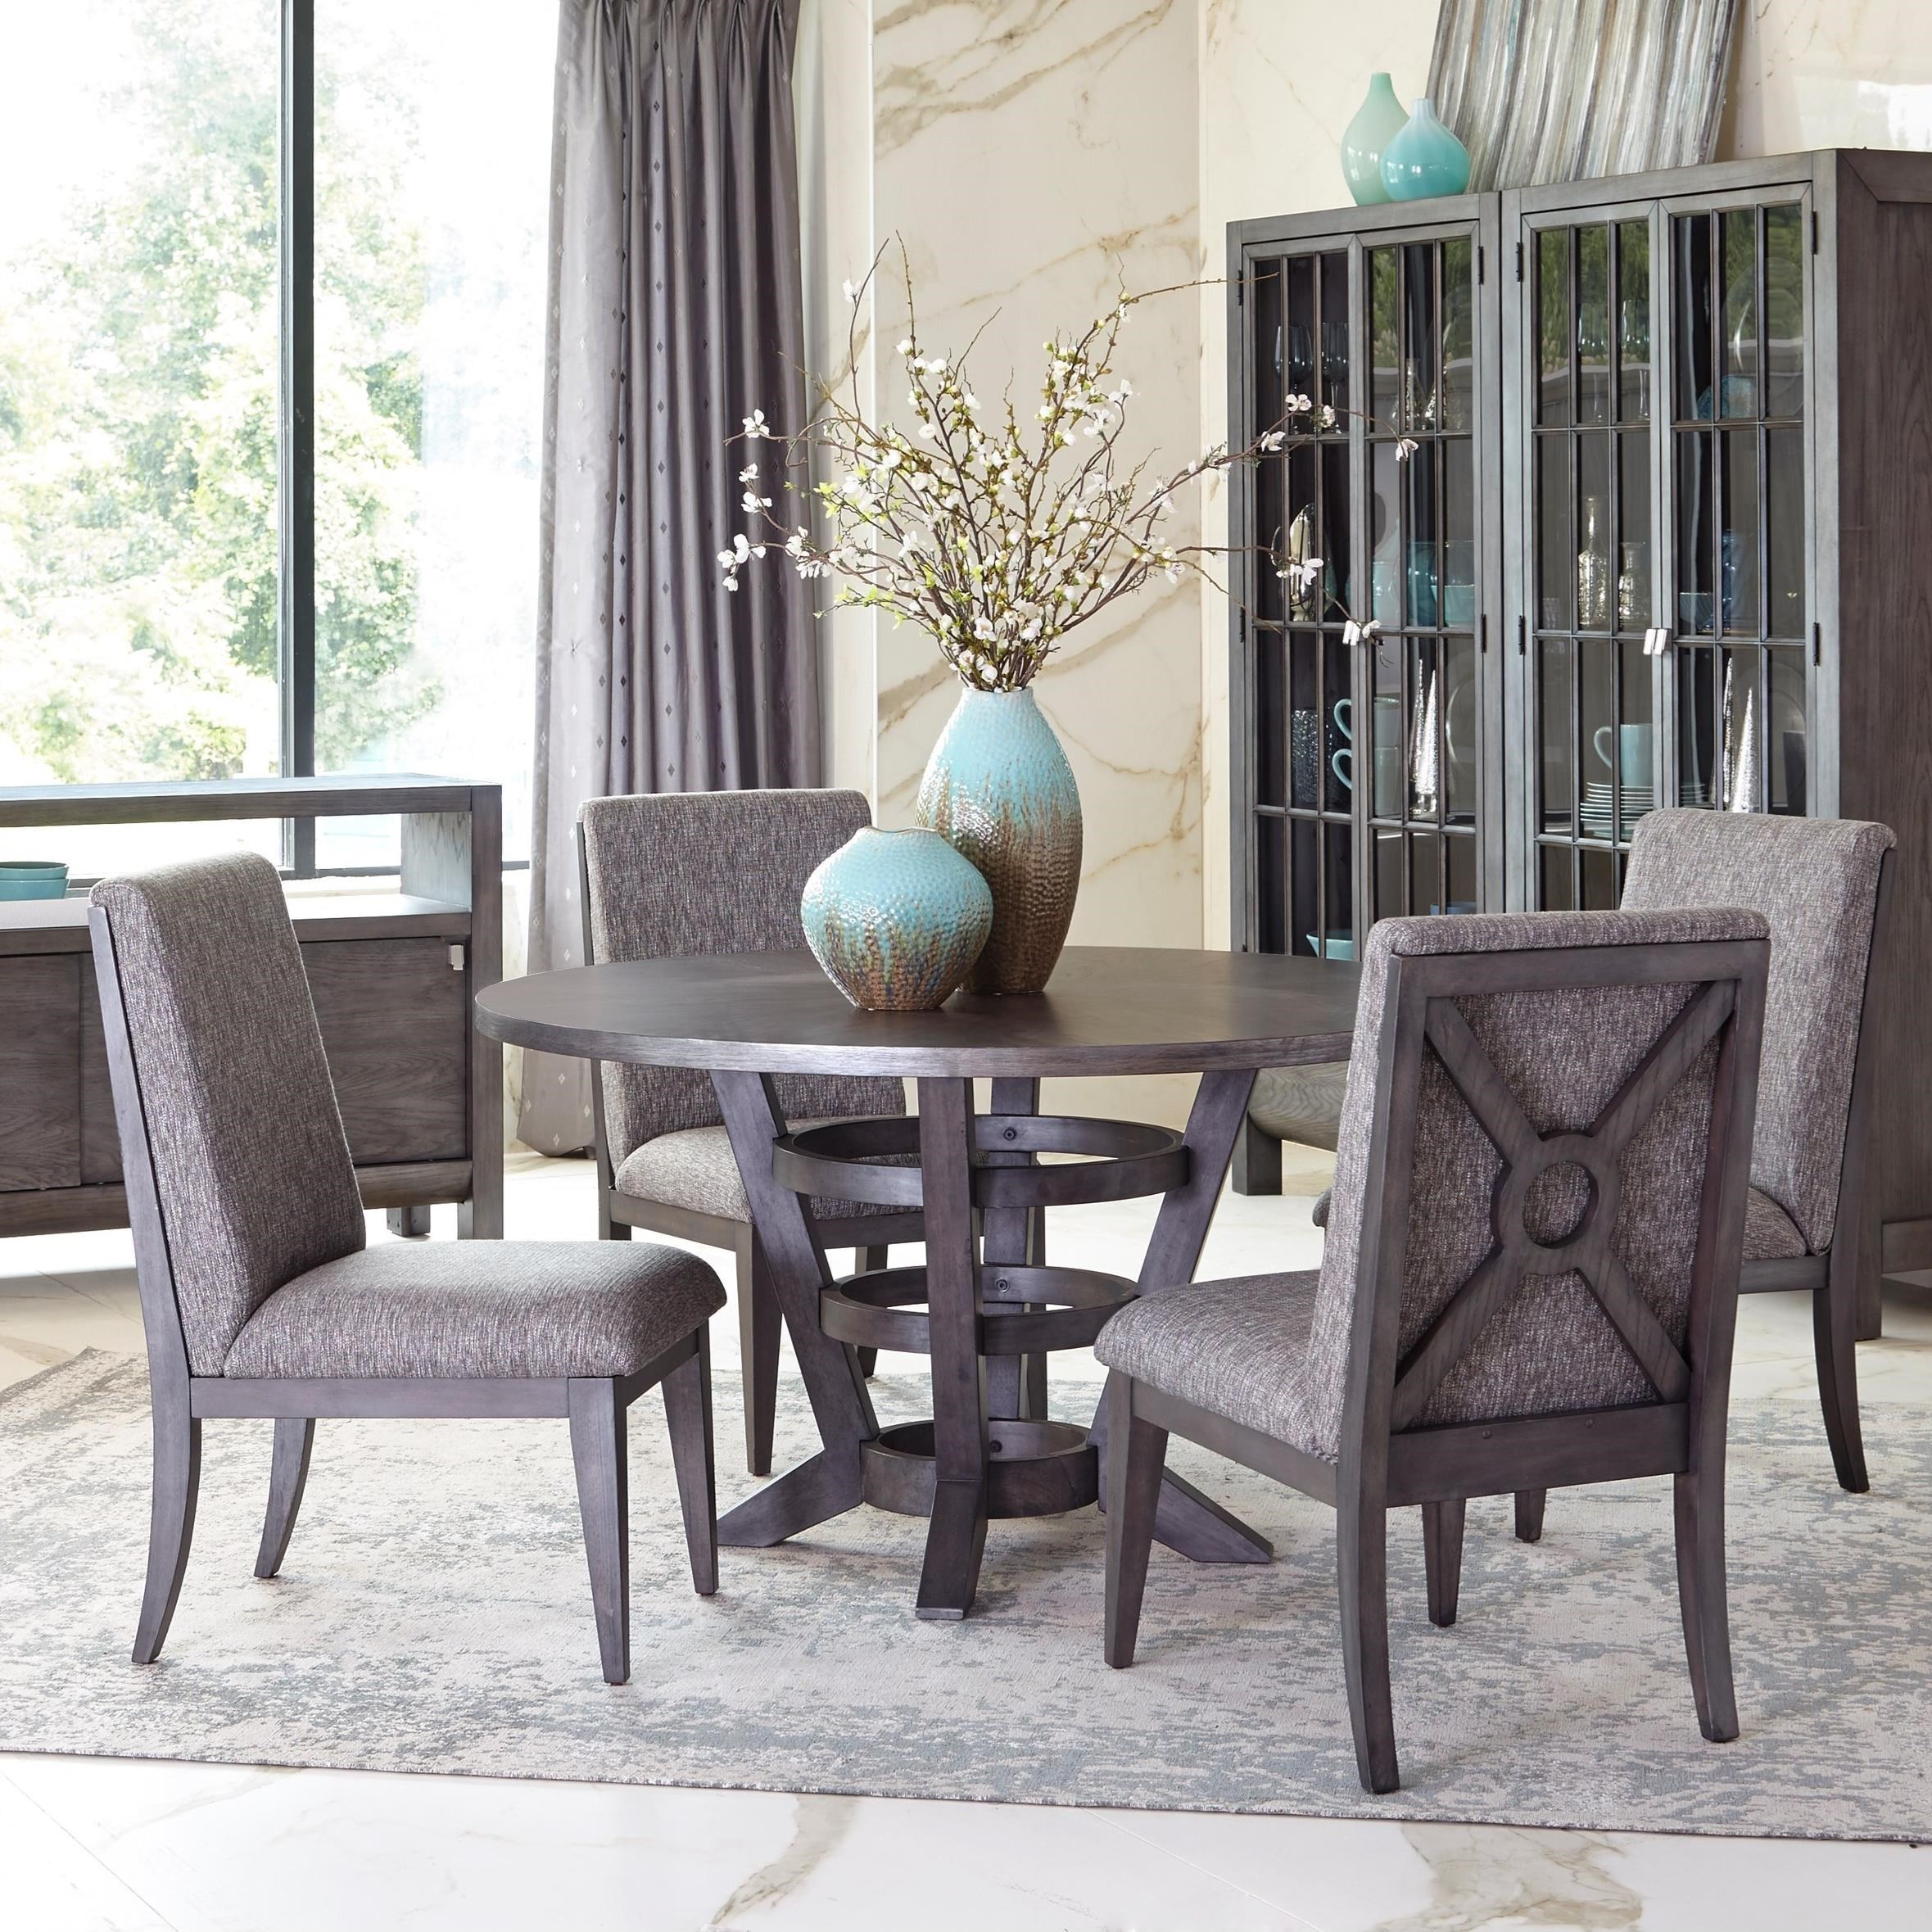 Charmant Trisha Yearwood Home Collection By Klaussner Music City5 Pc Dining Set ...